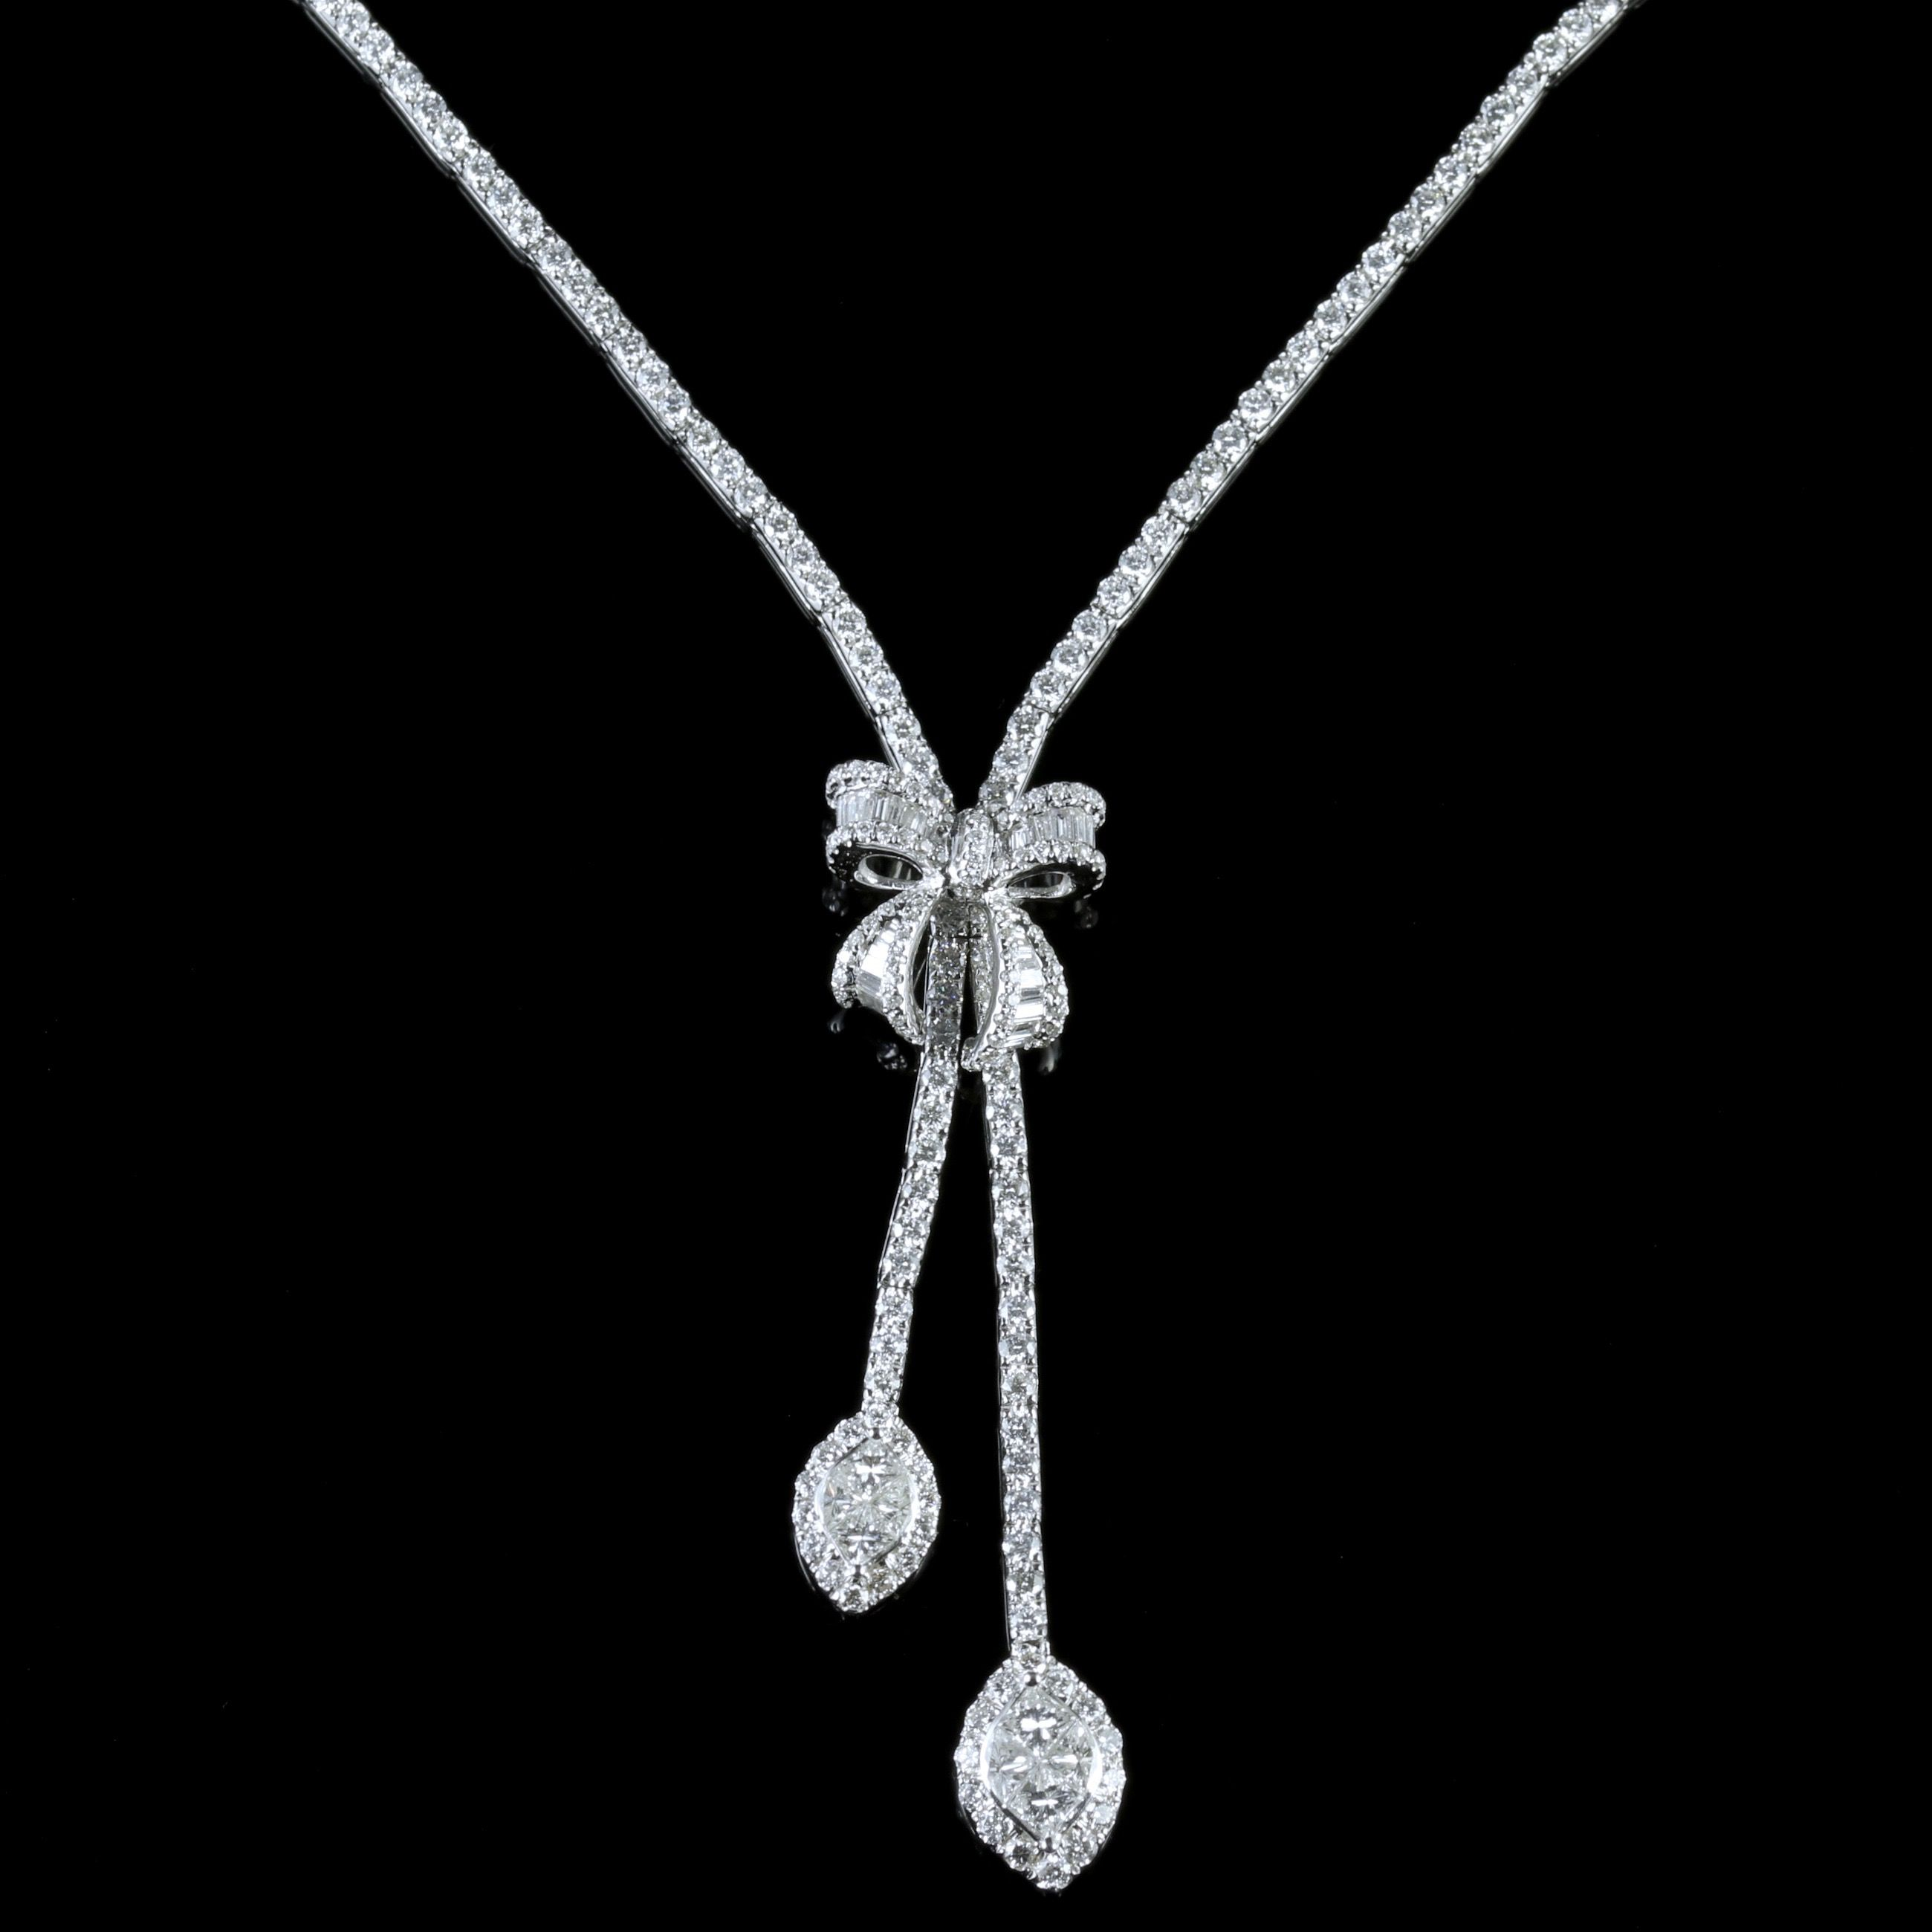 pear beautiful necklace jewelry diamondland cut jewellery diamond marquise